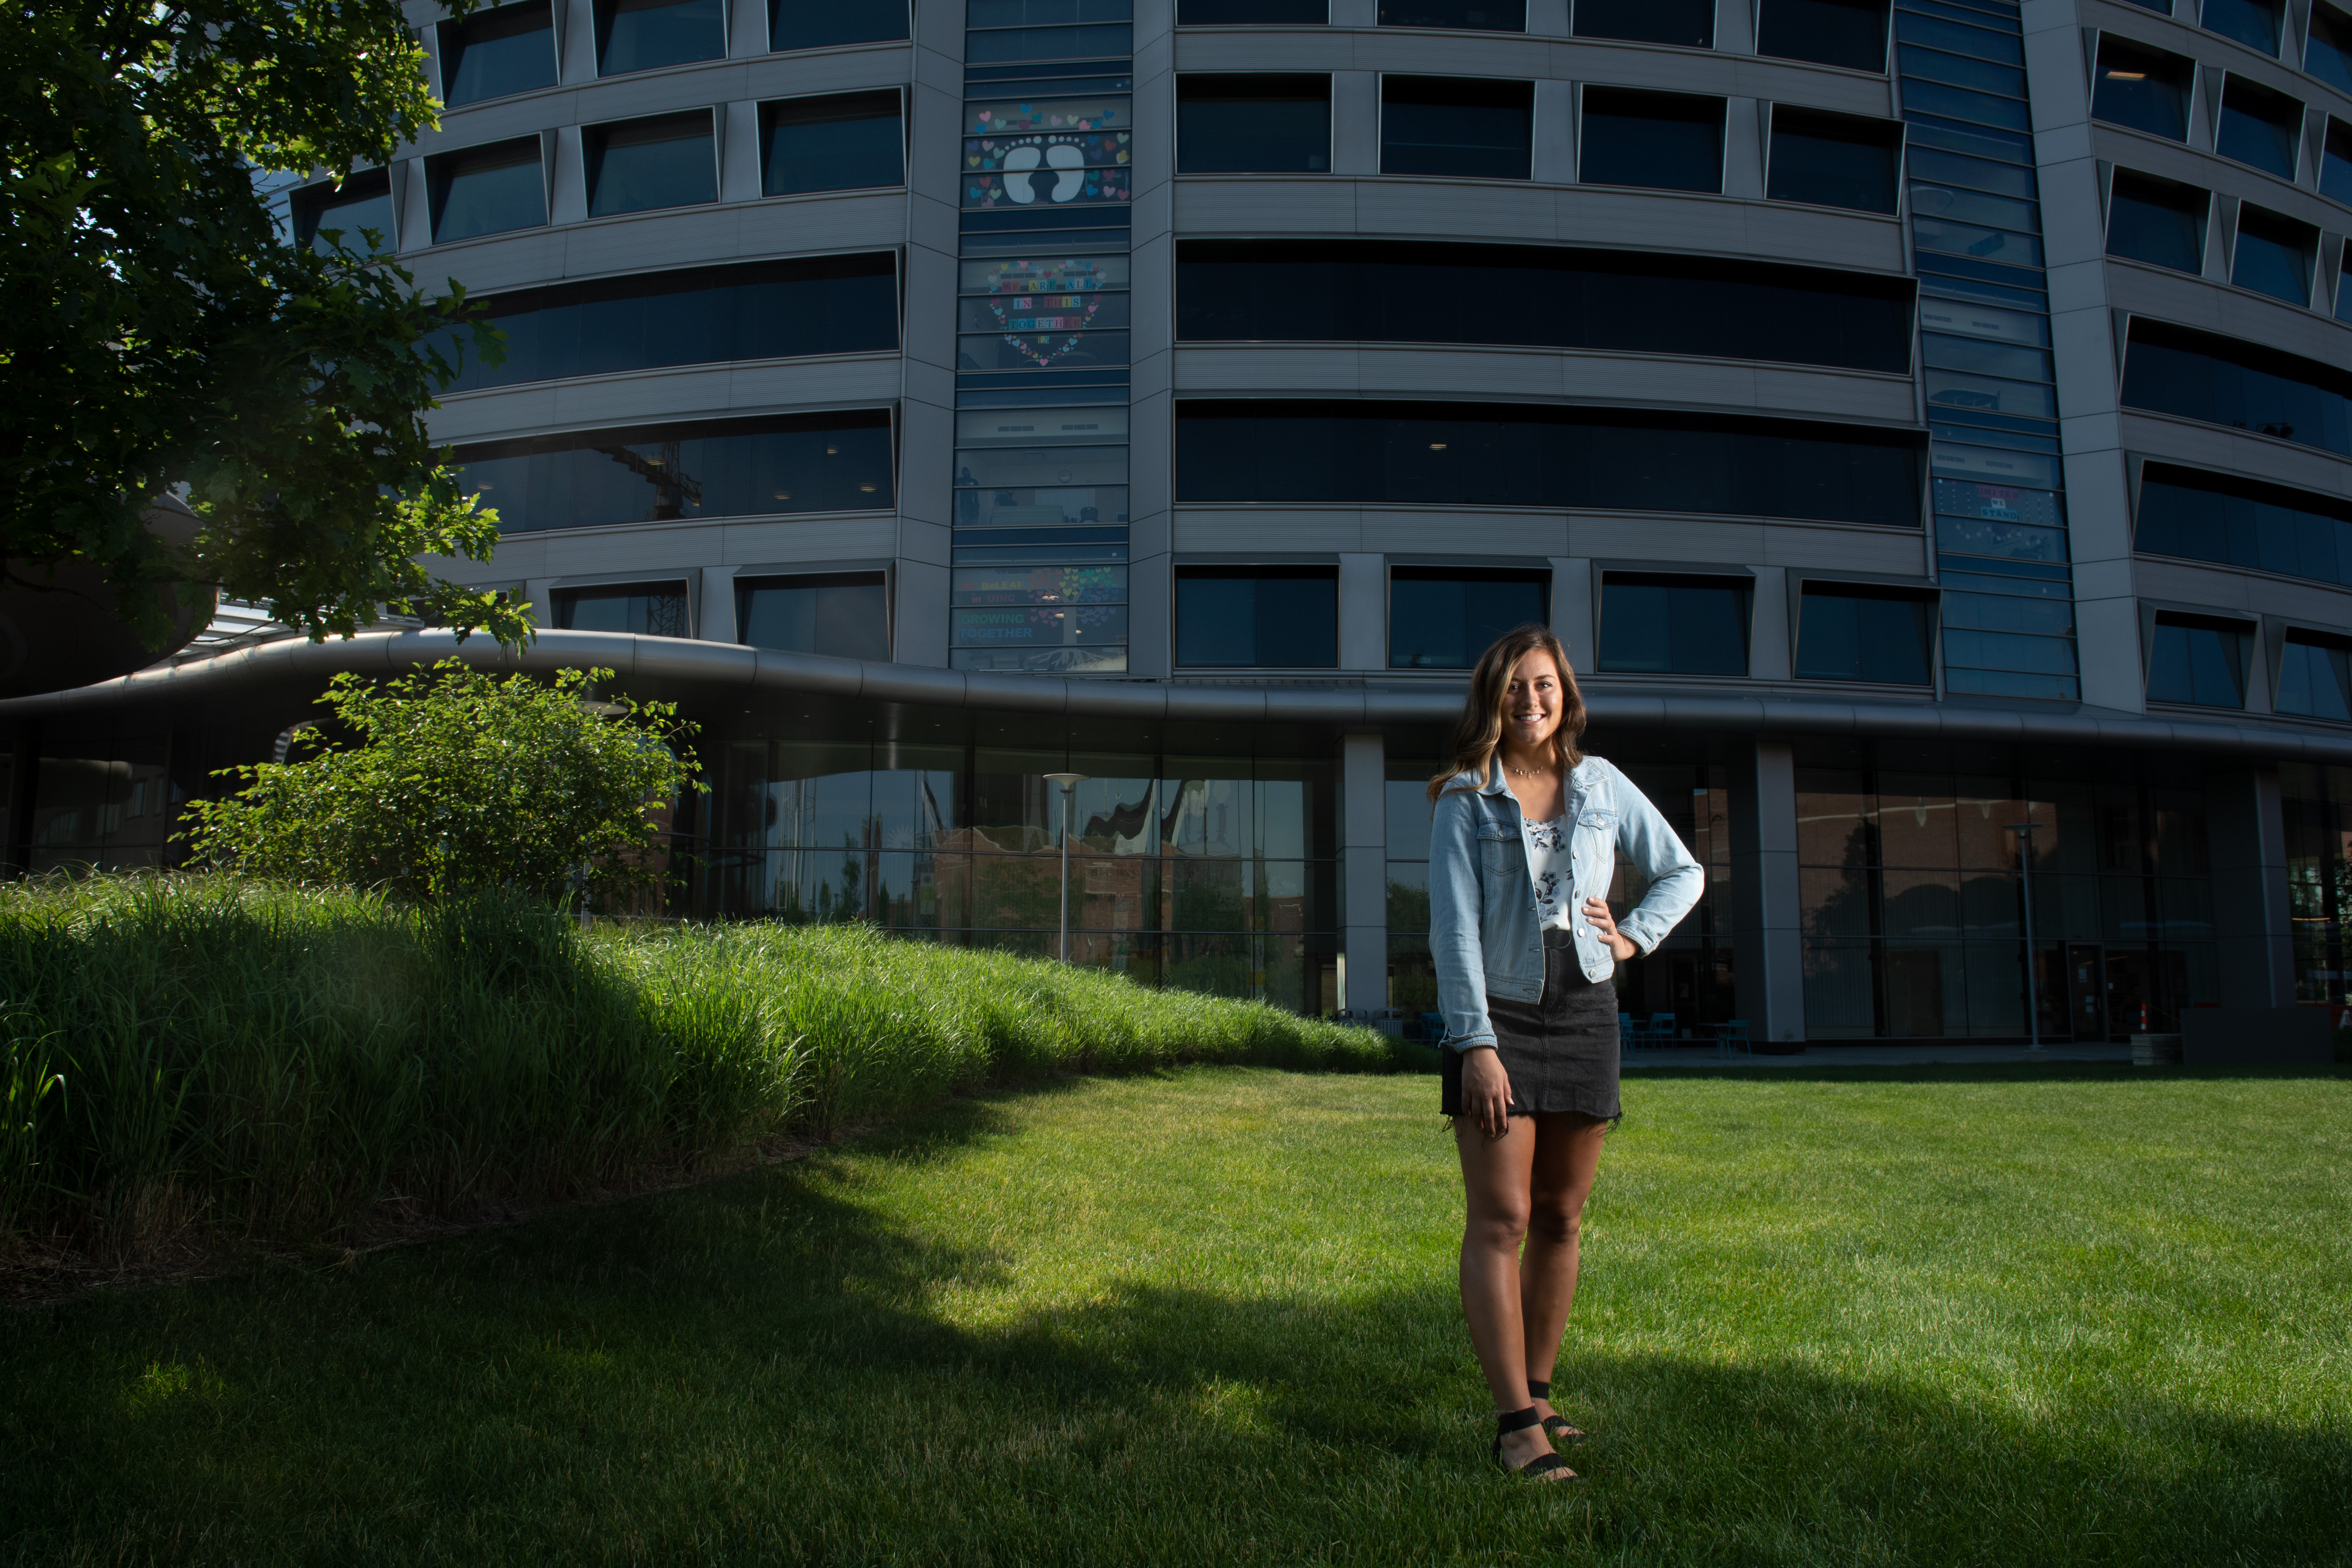 Hannah Bormann stands in front of University of Iowa Stead Family Children's Hospital, where she received cancer care as a teen and where she will work as a nurse starting in August 2020